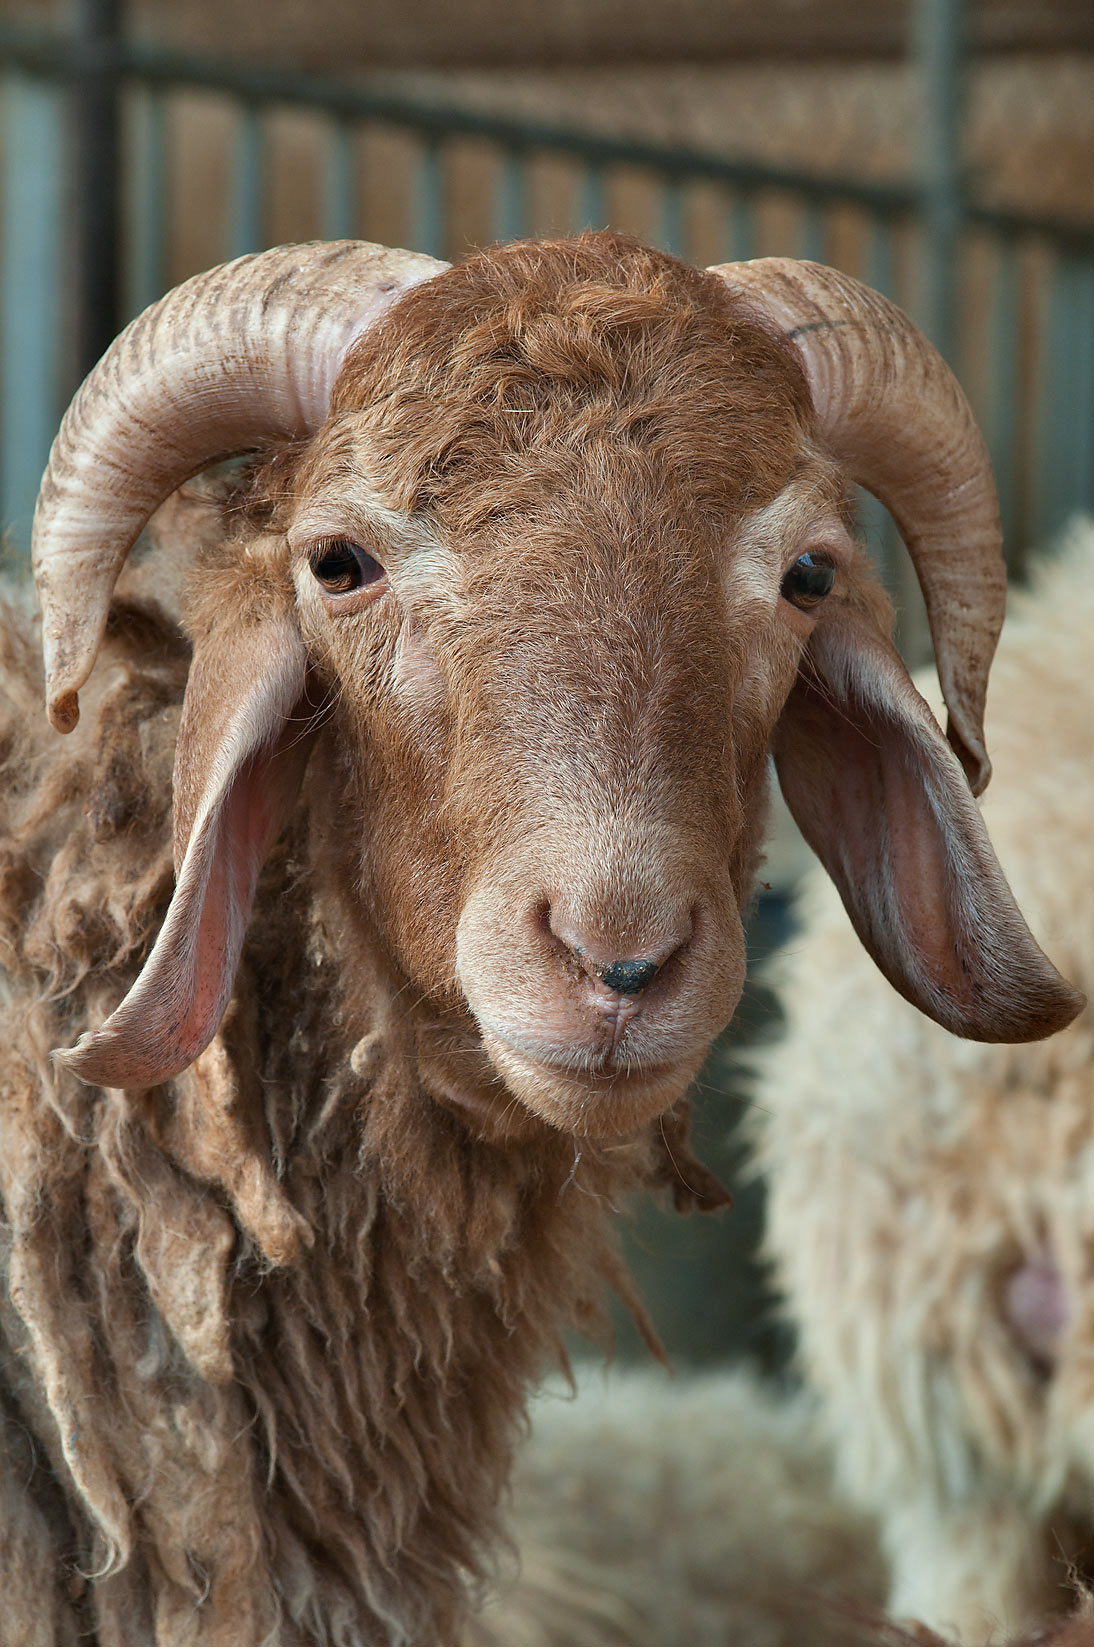 Brown ram in Sheep Market, Wholesale Markets area. Doha, Qatar